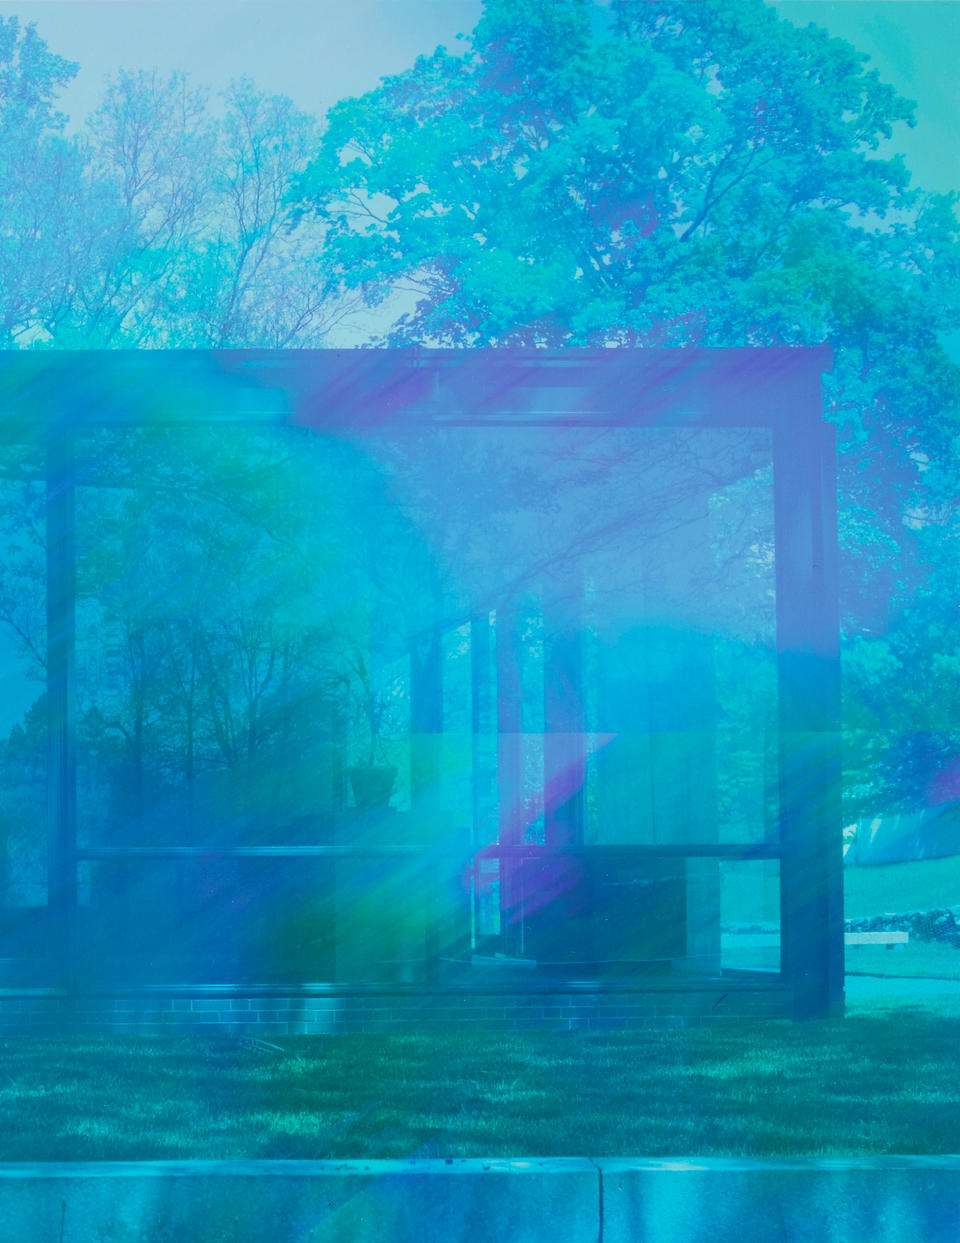 James Welling (born 1951) Glass House 5905, 2008 11 x 17 1/8 in. (27.9 x 43.5 cm) (This work is from the number twenty-two of the edition of twenty-five.)